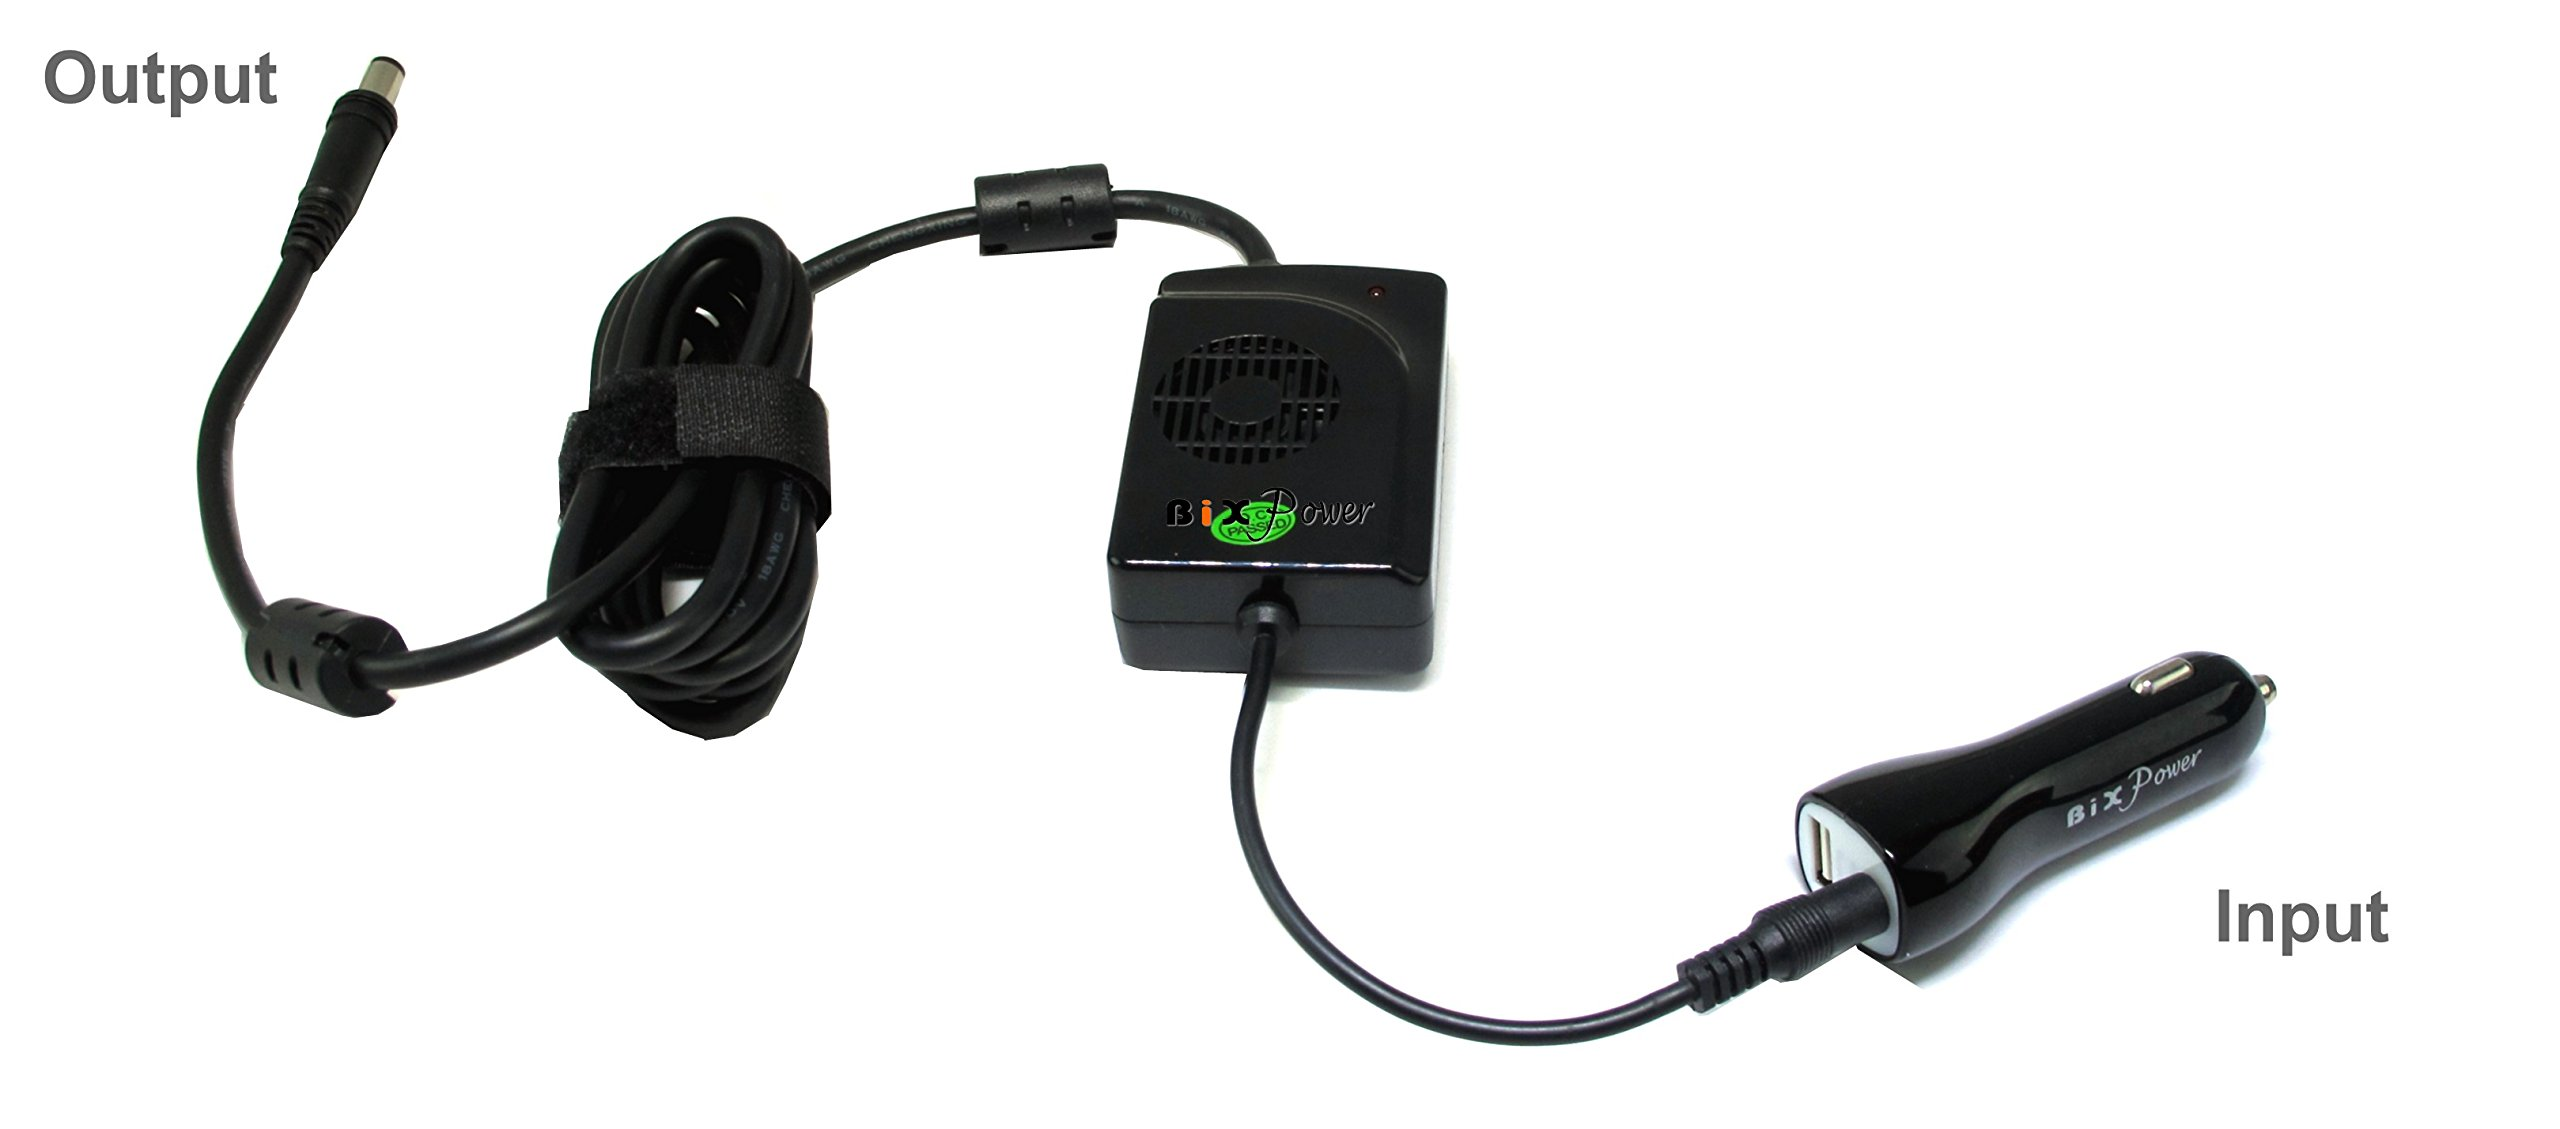 High Capacity (192Wh) Portable Power Bank for ResMed AirSense 10 CPAP Machine CP190-S10 by BiXPower (Image #5)